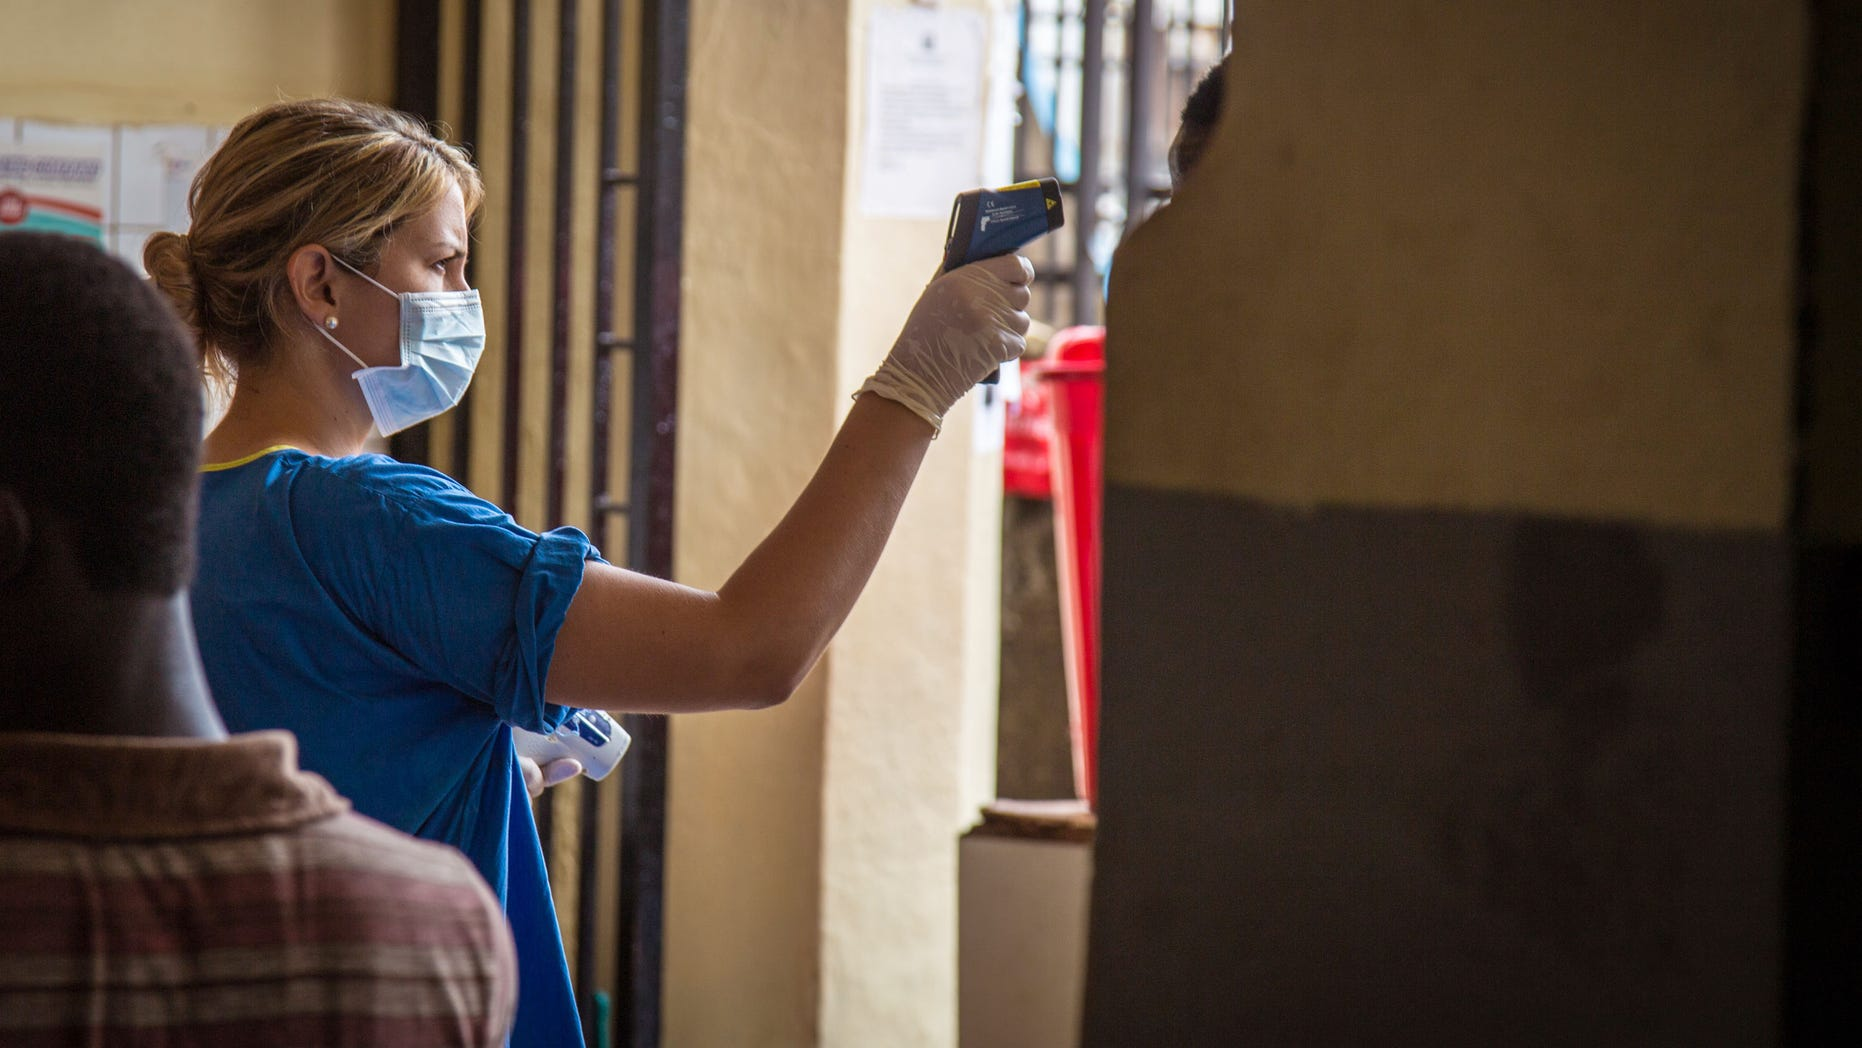 In this photo taken on Friday, Aug. 29, 2014, a health worker measures a patient's temperature at the Connaught Hospital, which has suffered the loss of medical workers in the past from the Ebola virus, in Freetown, Sierra Leone.  (AP Photo/ Michael Duff)